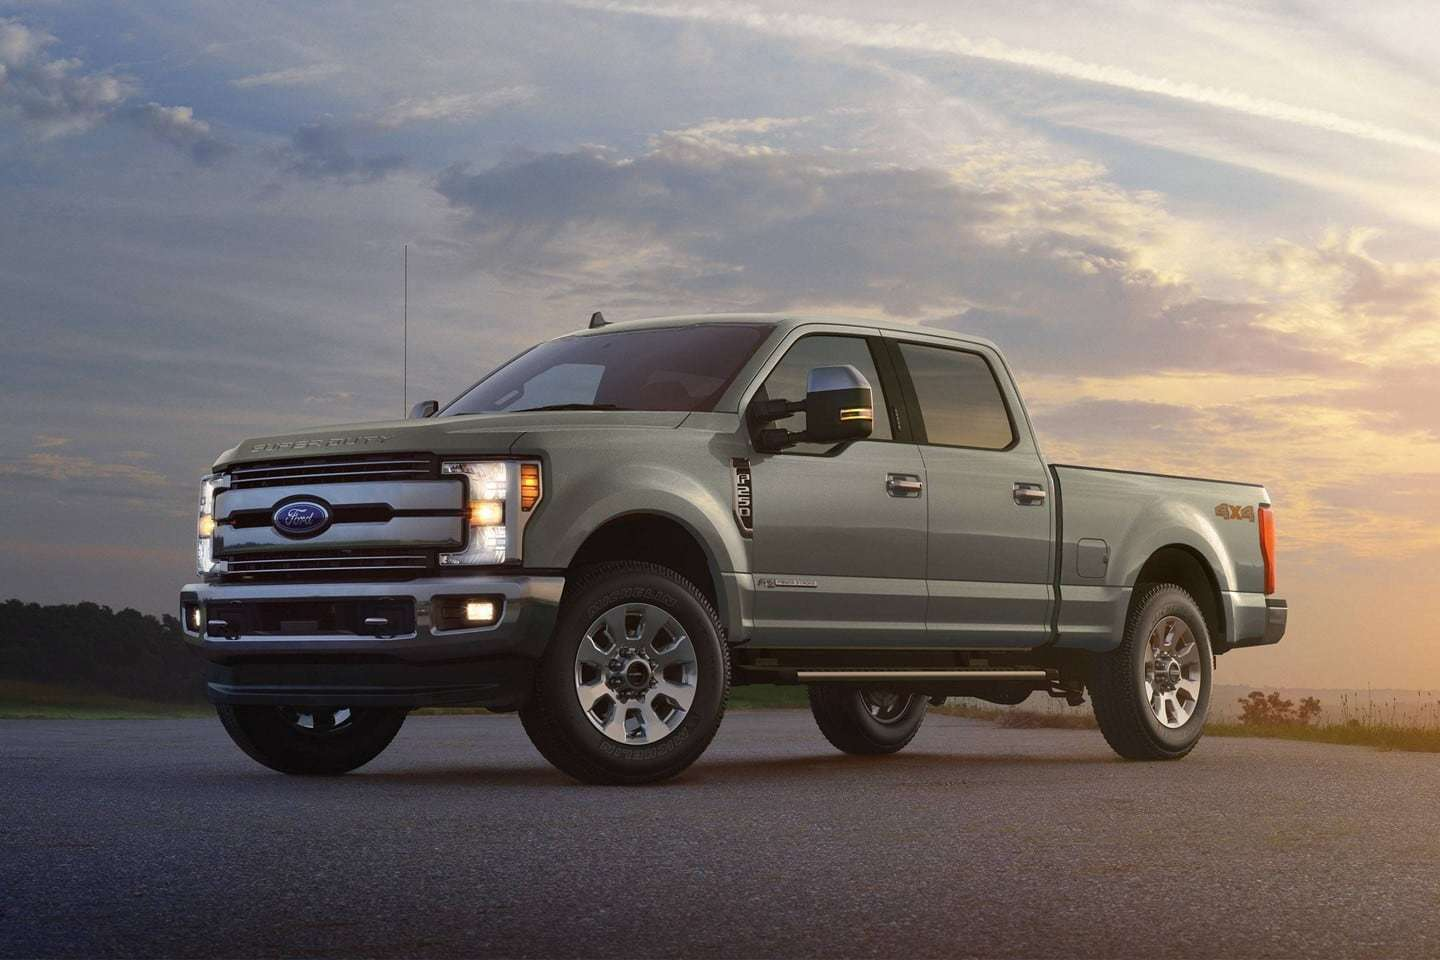 hight resolution of silver 2019 ford f 250 against a sunset background